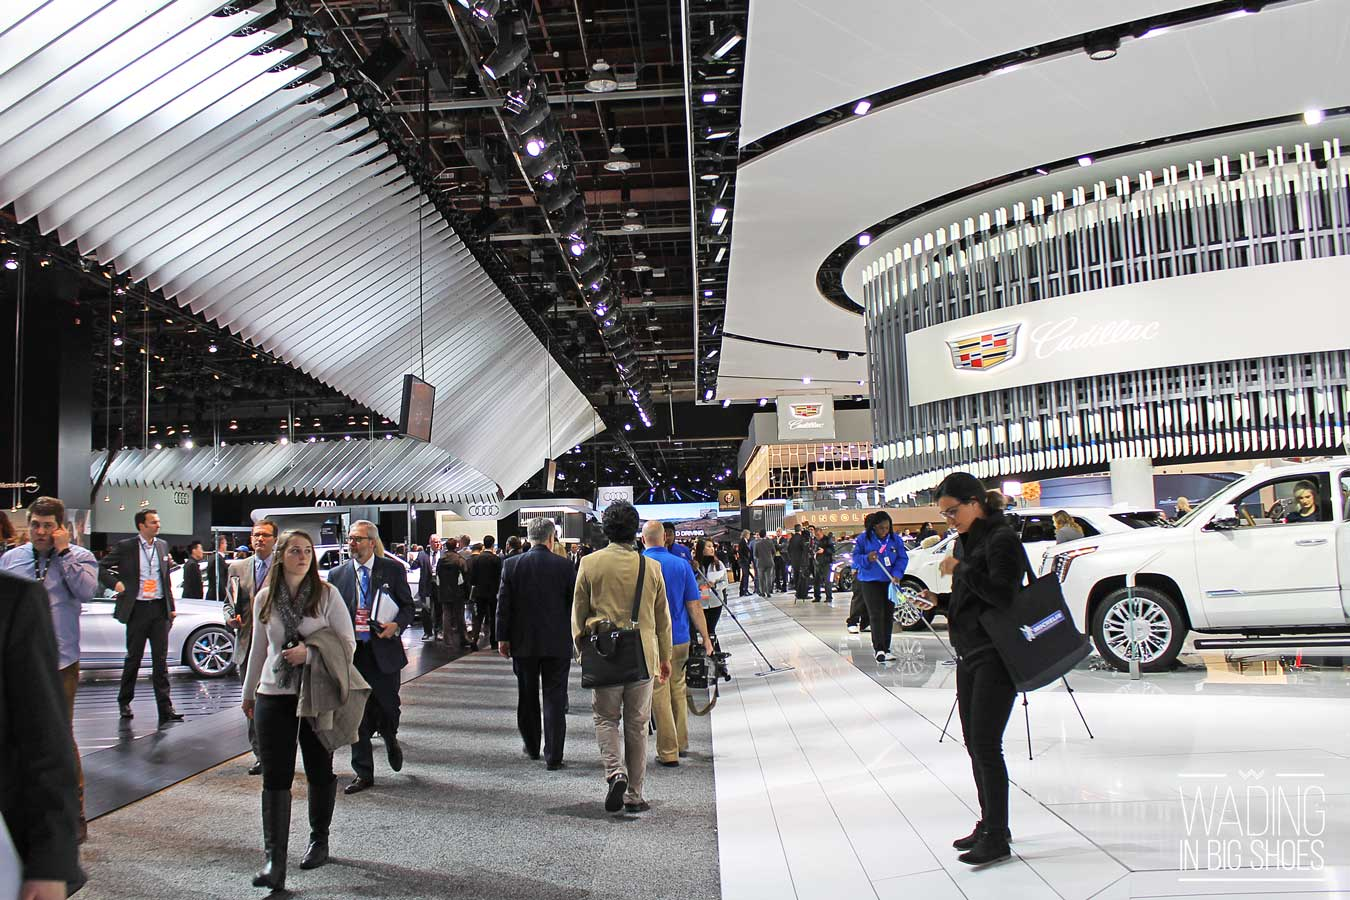 6 Reasons Why I Look Forward To Visiting The Detroit Auto Show Every Year | via Wading in Big Shoes